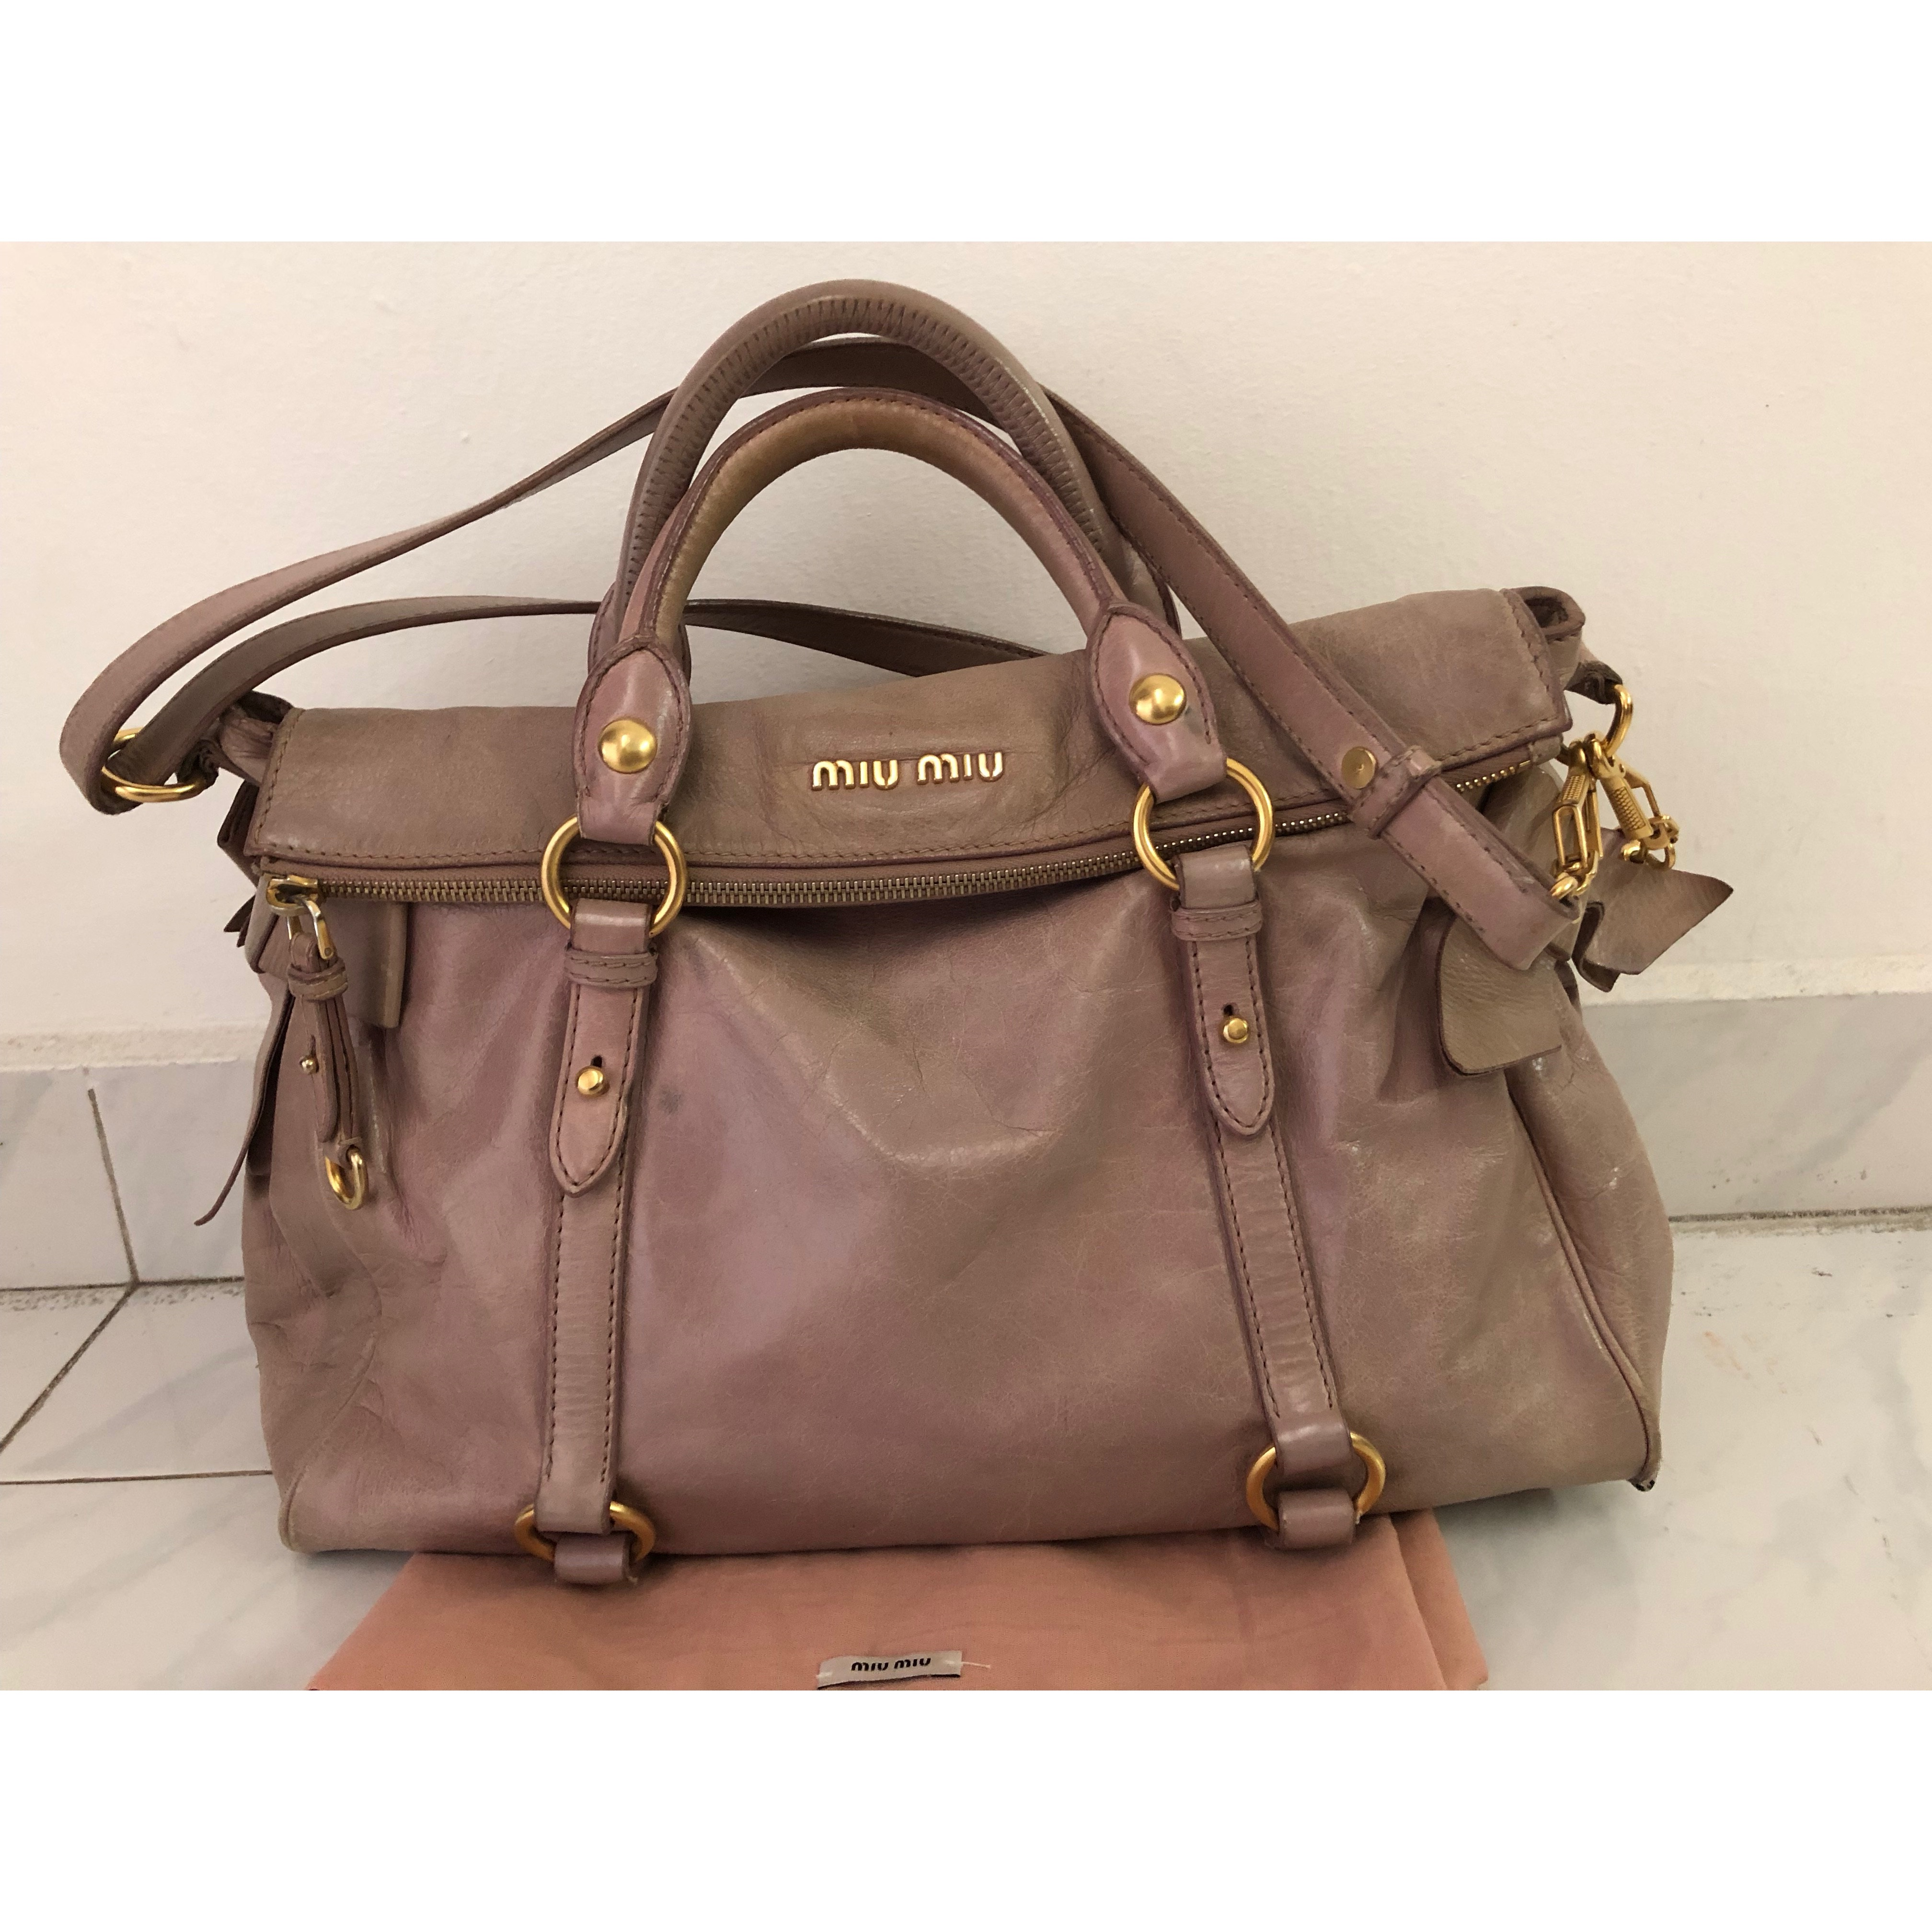 25182b53afa Miu Miu vitello bow bag in large size Size   37 cm x 25 cm x 12 cm  Condition   Fair Colour Material   dusty pink  leather INCLUDED ITEMS  STRAP, ...